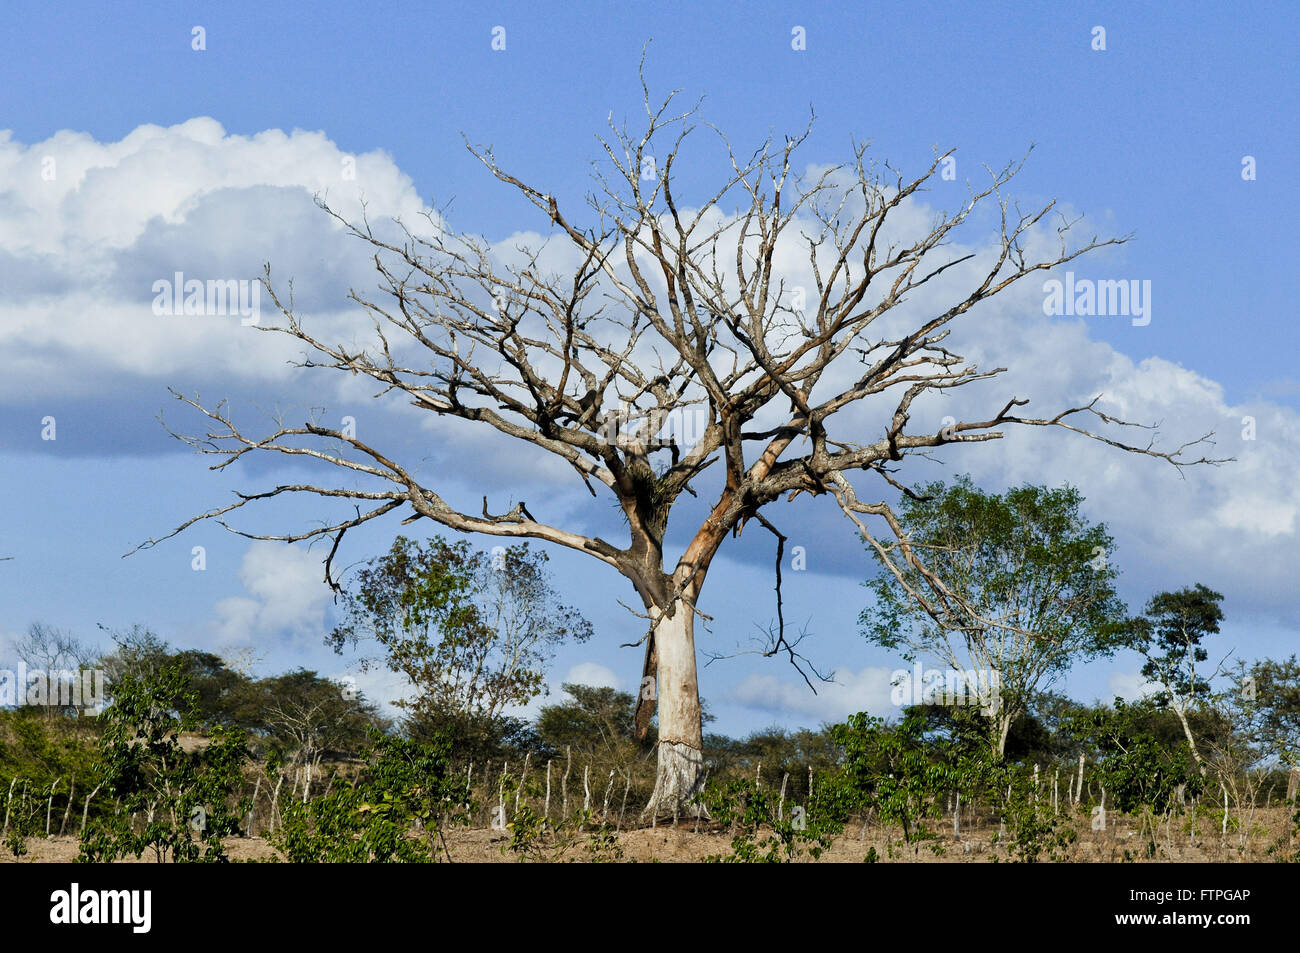 Dry tree in the countryside - Stock Image